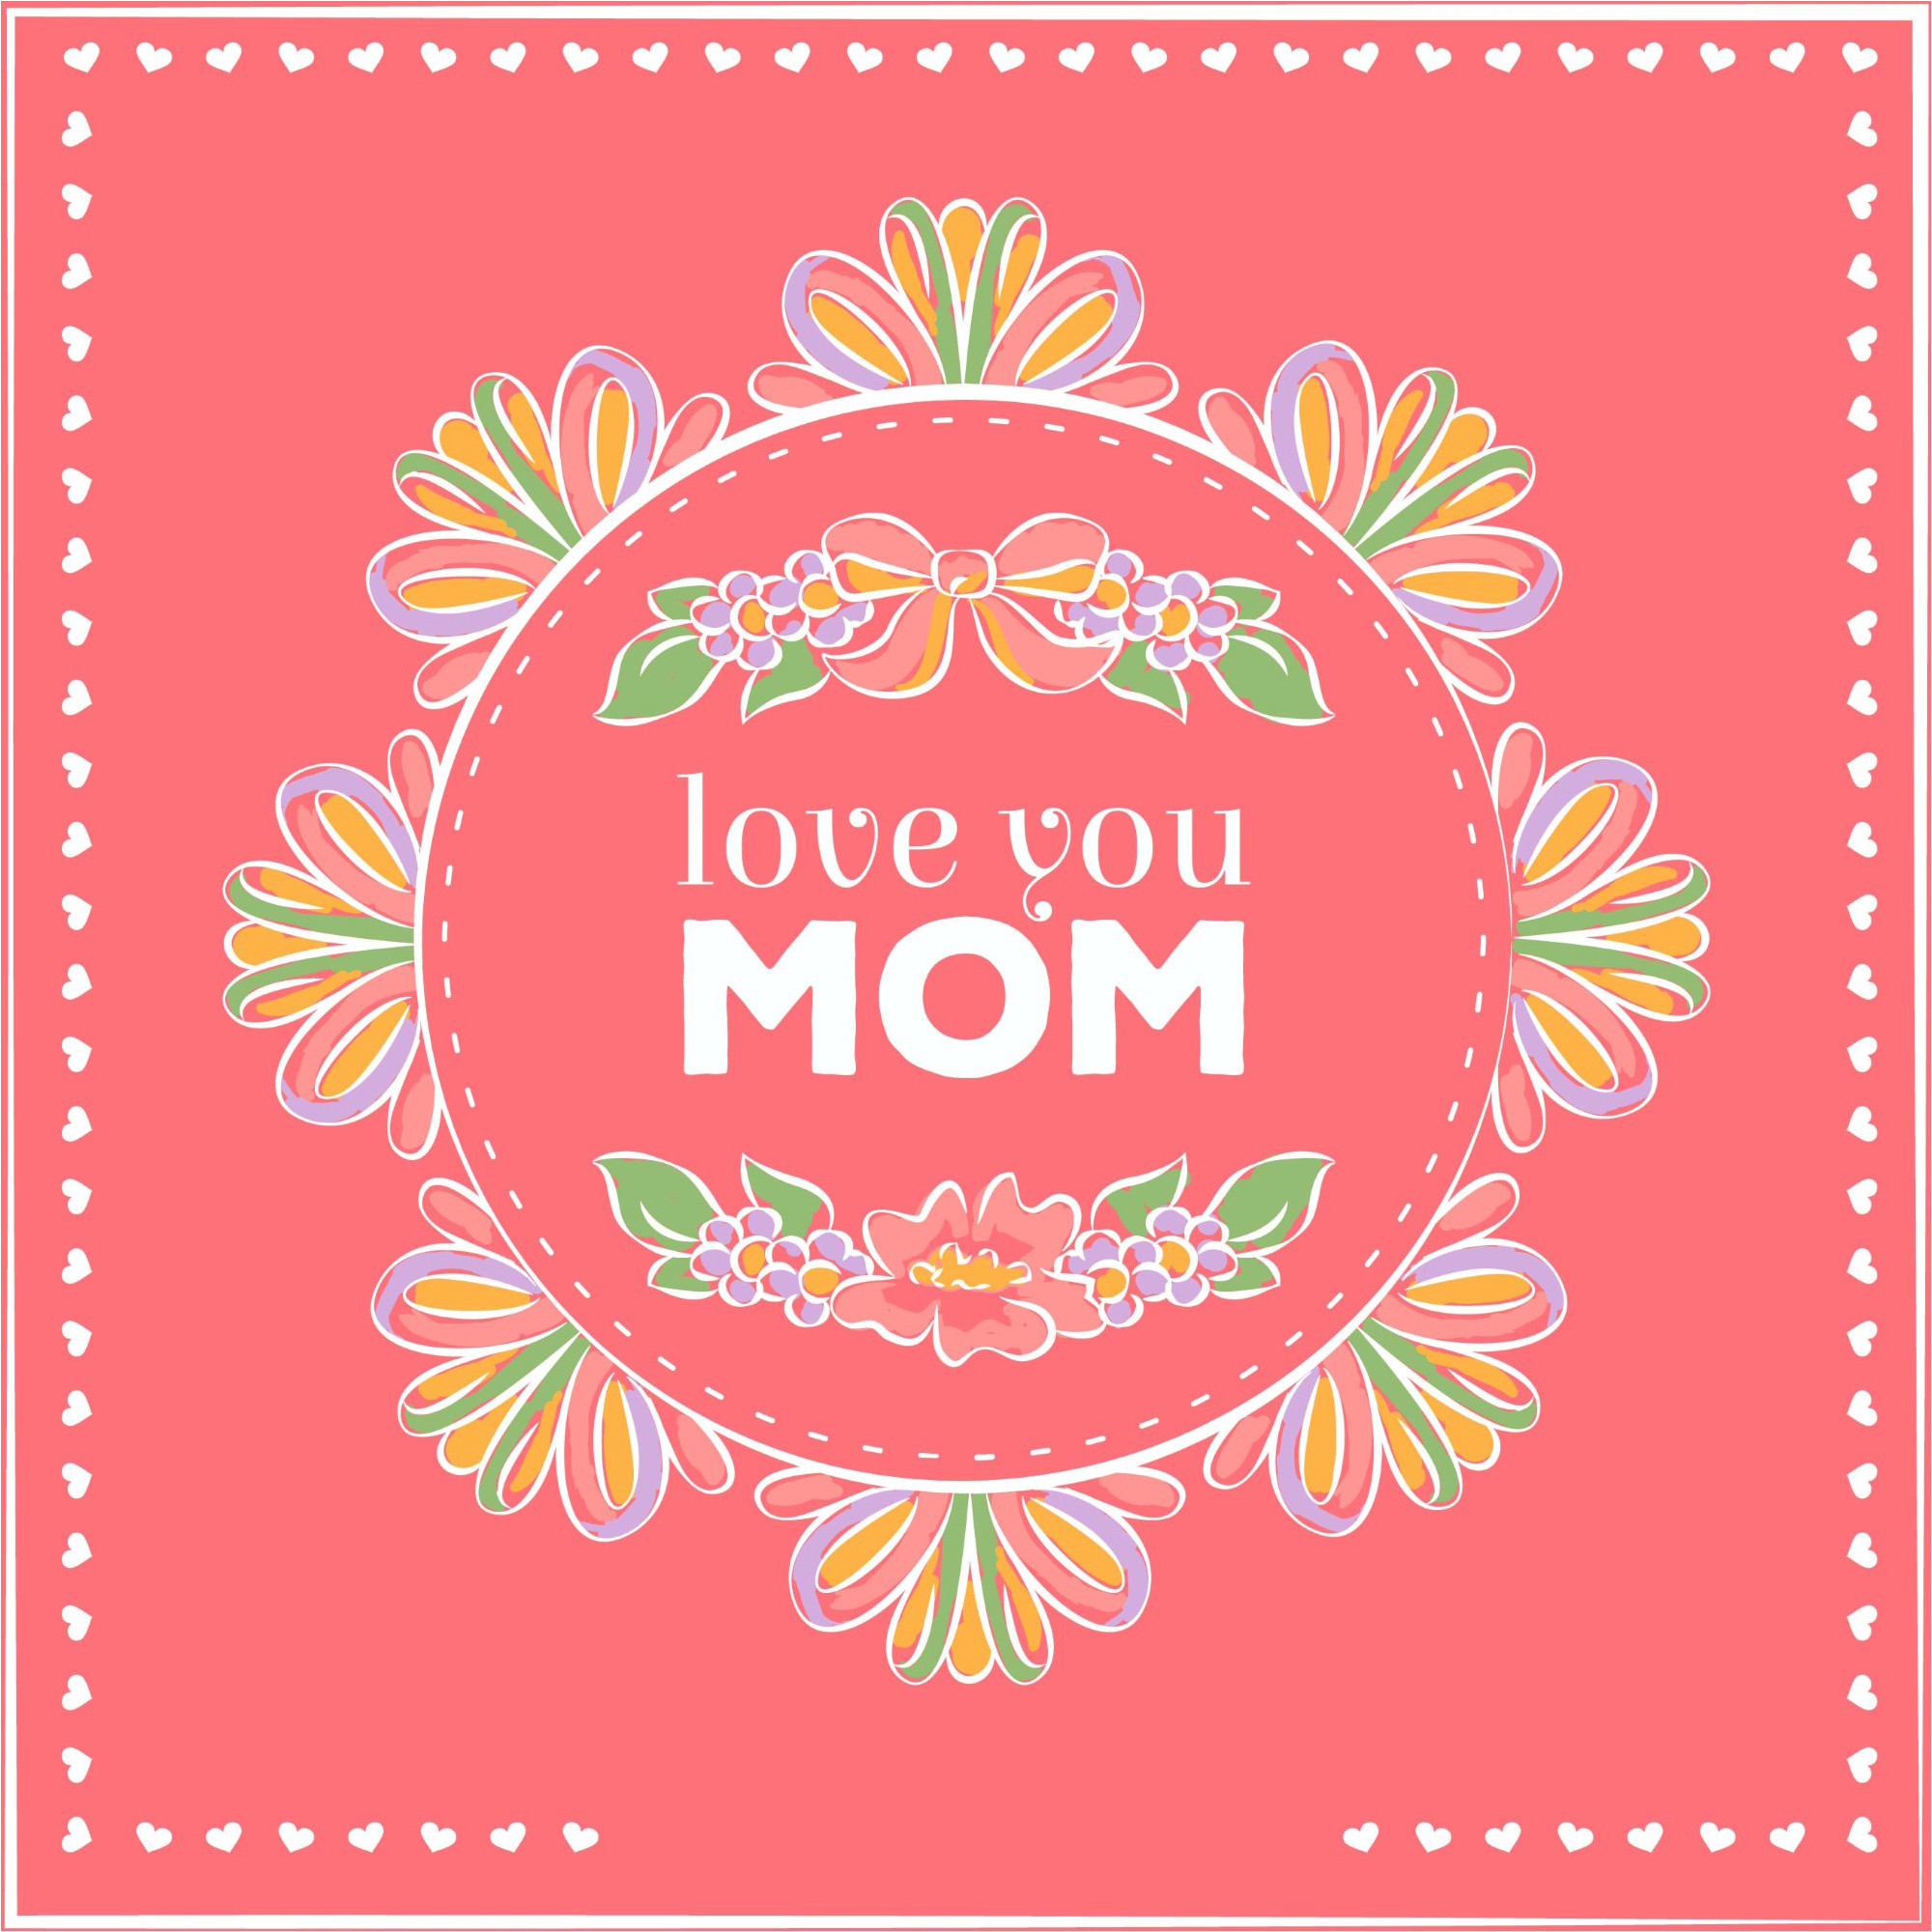 2000x2000 Love You Mom happy Mother's Day Greeting card Design Vector & Wallpaper